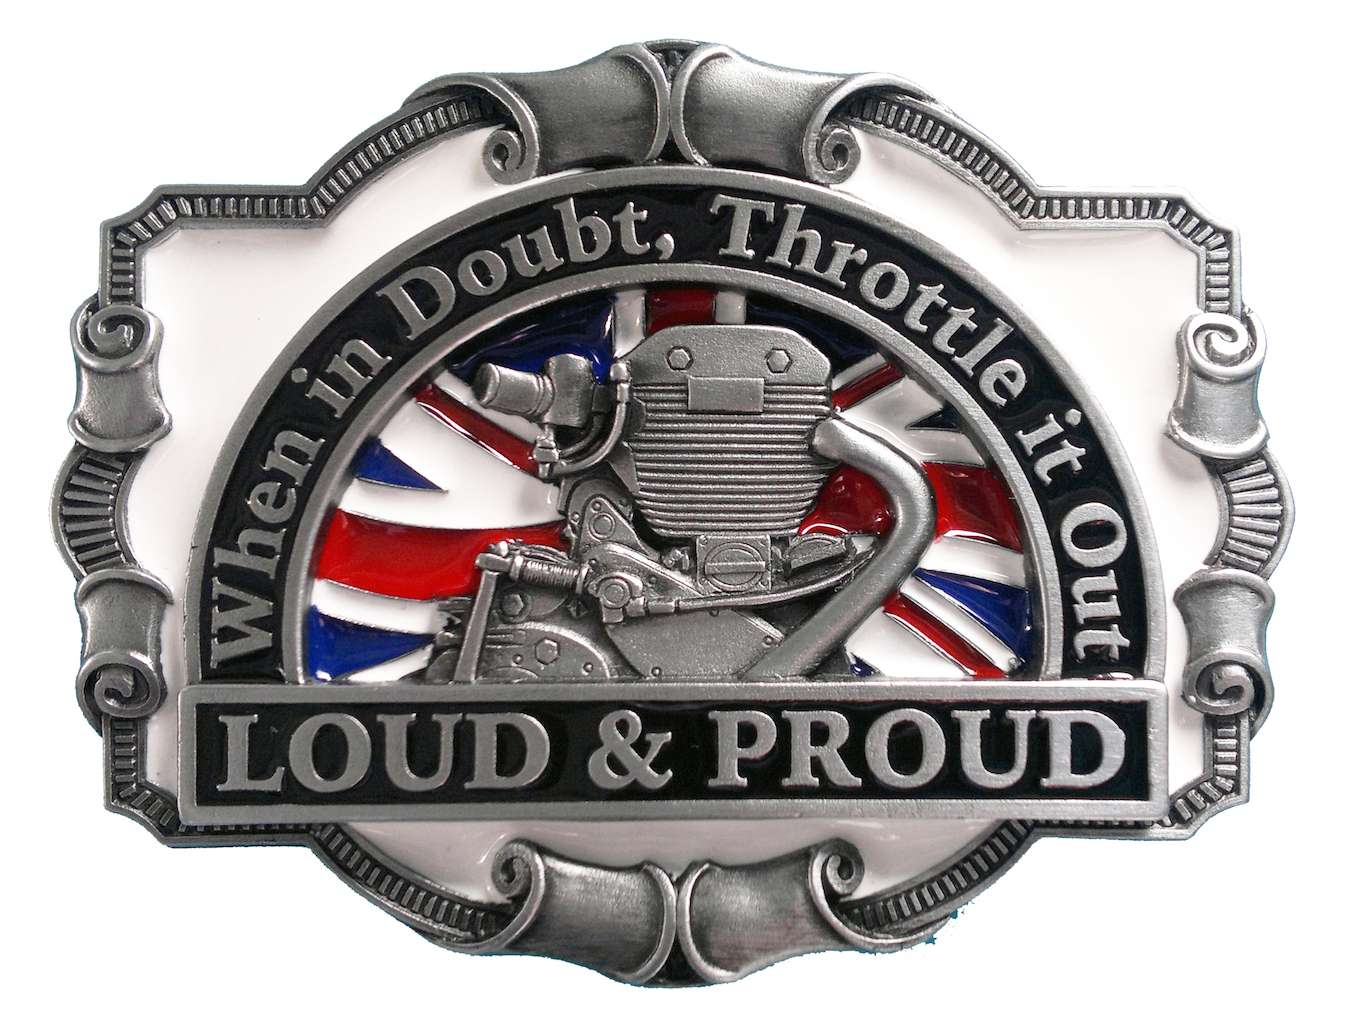 Loud & Proud Biker Belt Buckle